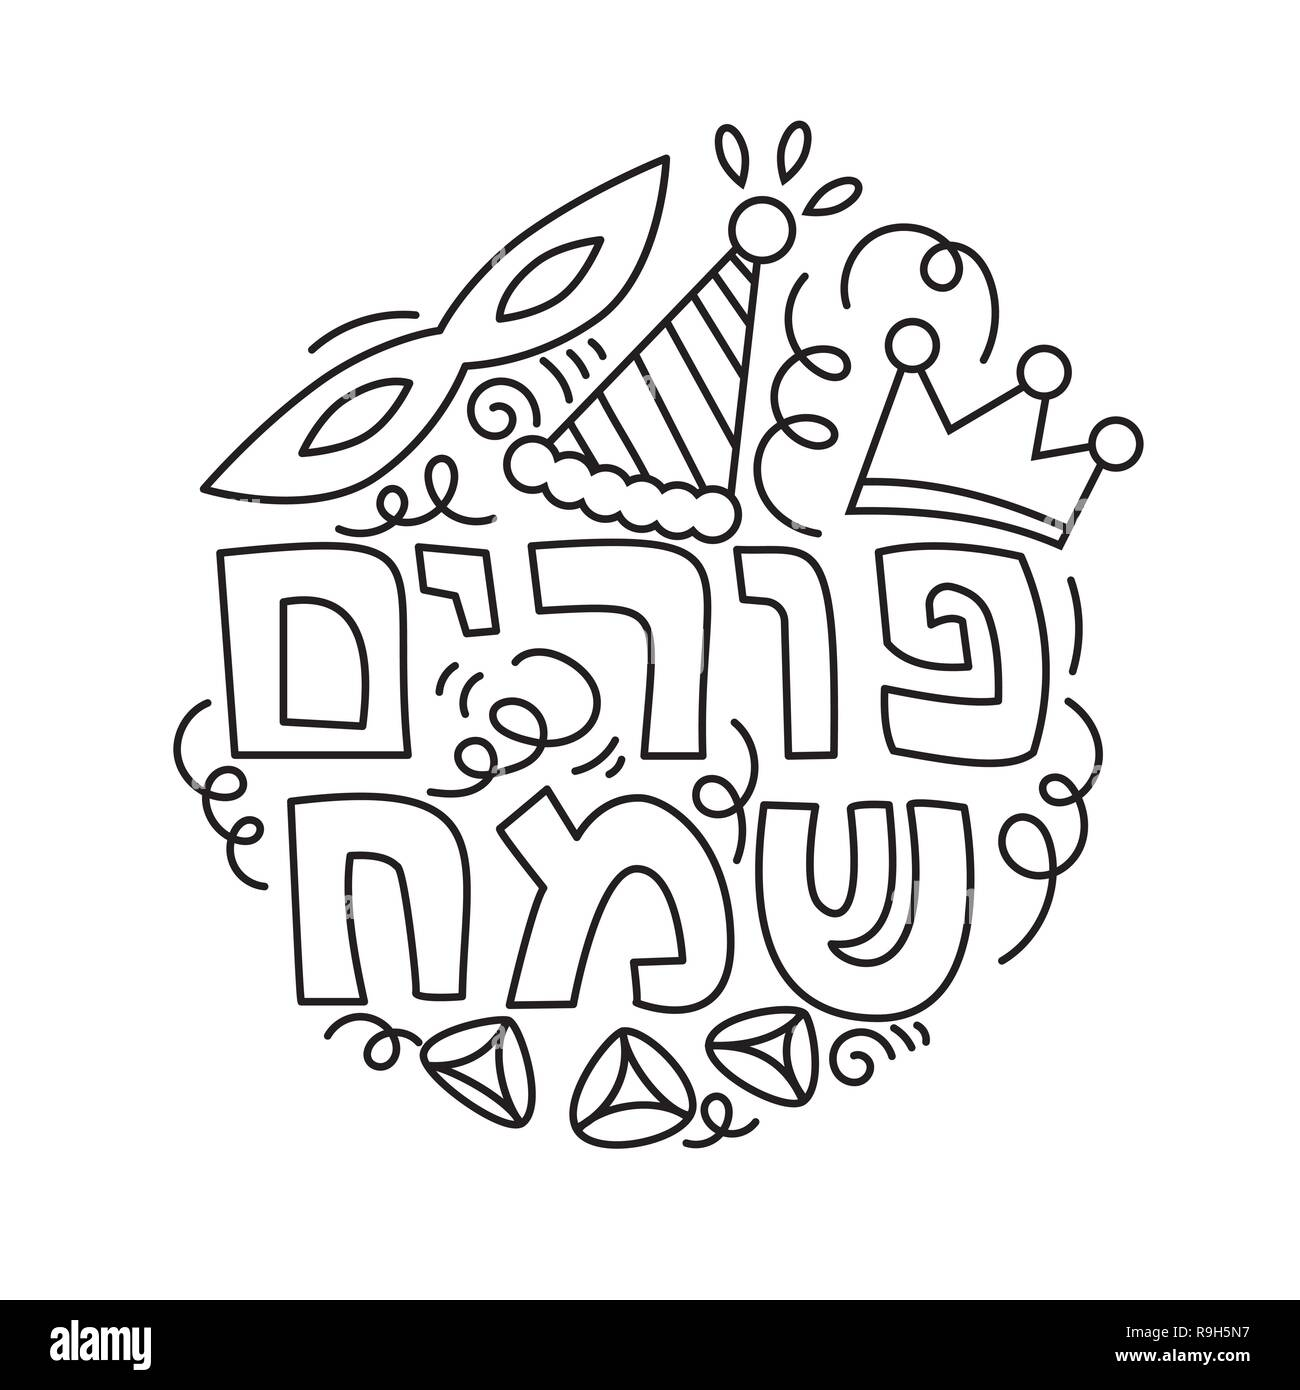 Purim Greeting Card And Coloring Page In Linear Doodle Style With Carnival Mask Hats Crown Hamantaschen And Hebrew Text Happy Purim Black And White Vector Illustration Stock Vector Image Art